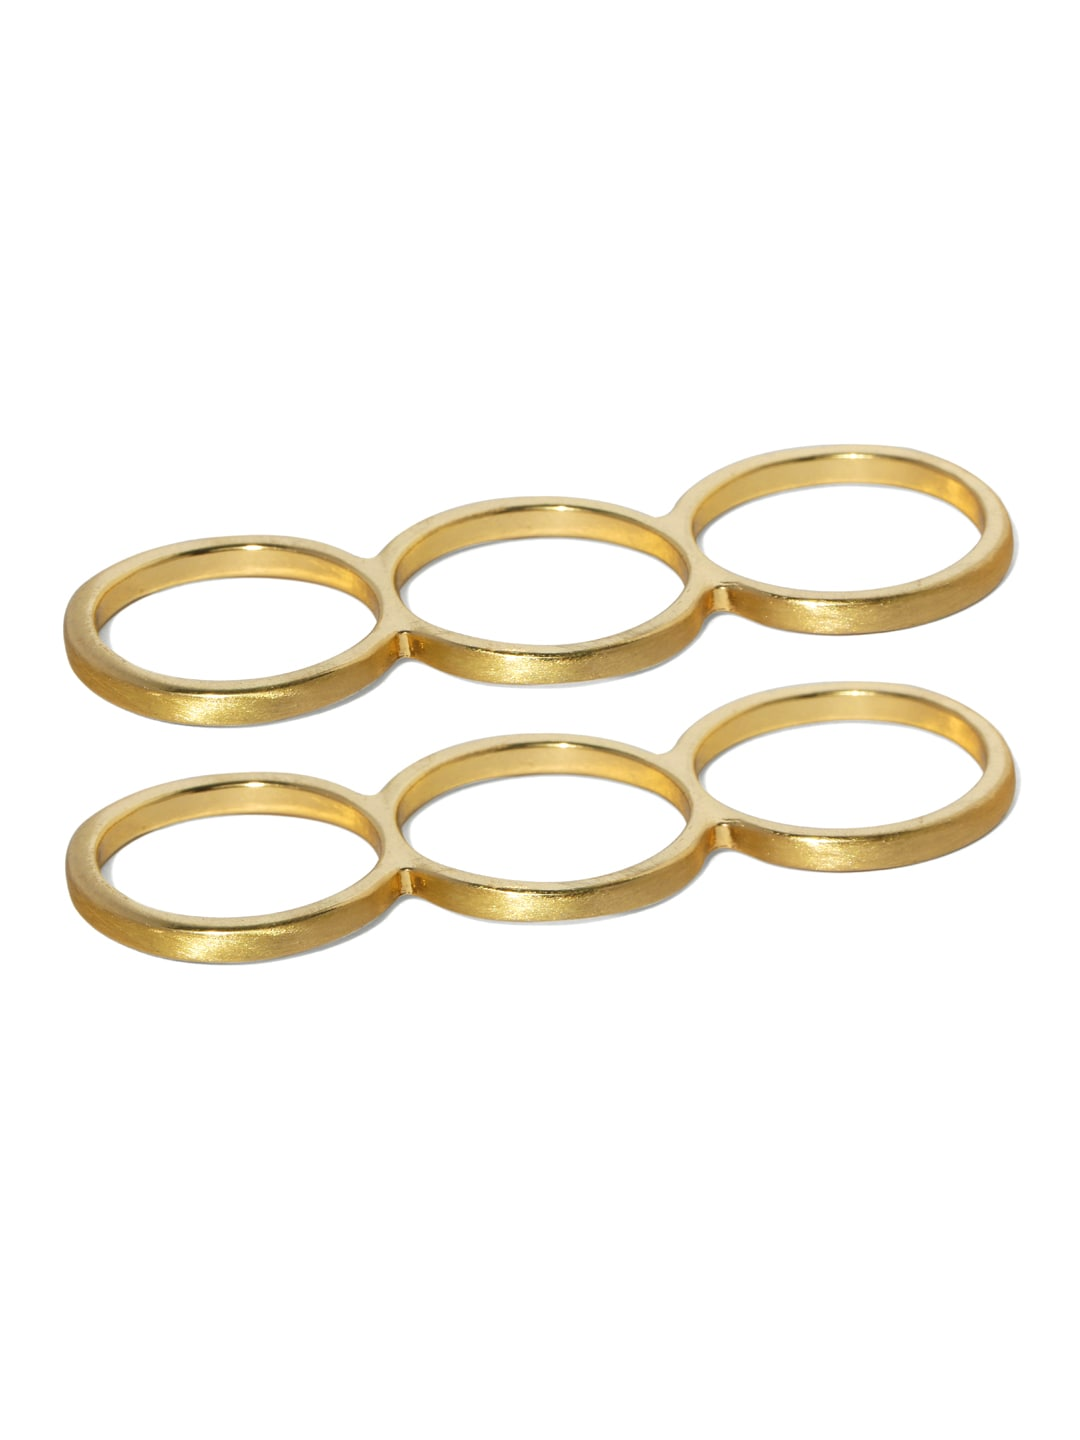 Parfois Set of 2 Gold-Toned Rings